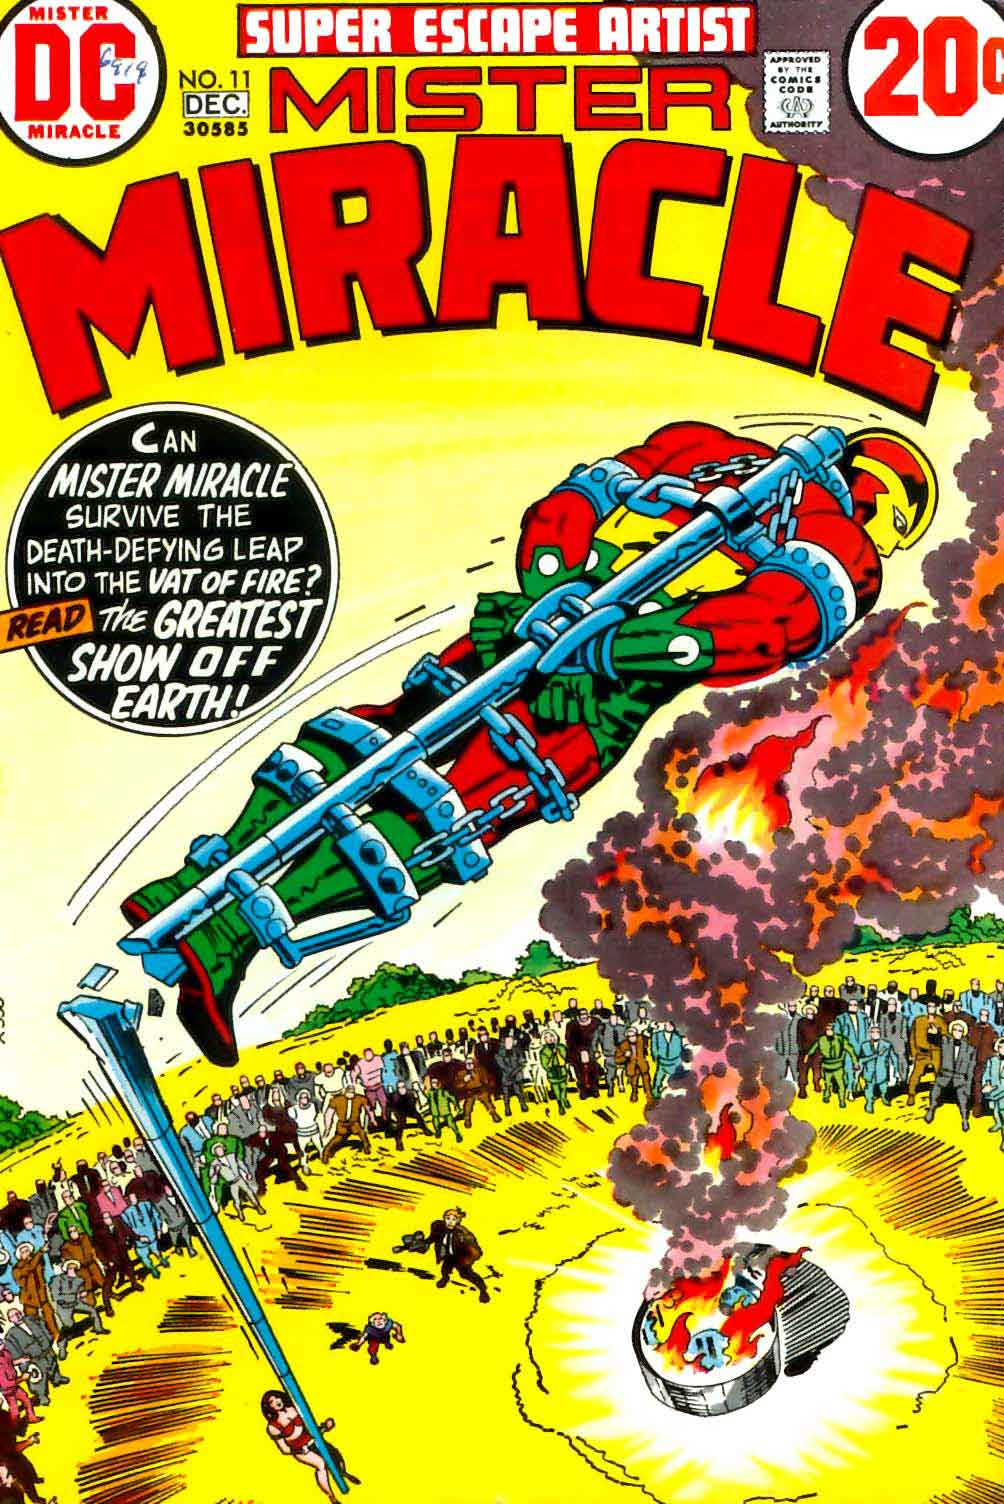 Mister Miracle v1 #11 dc 1970s bronze age comic book cover art by Jack Kirby